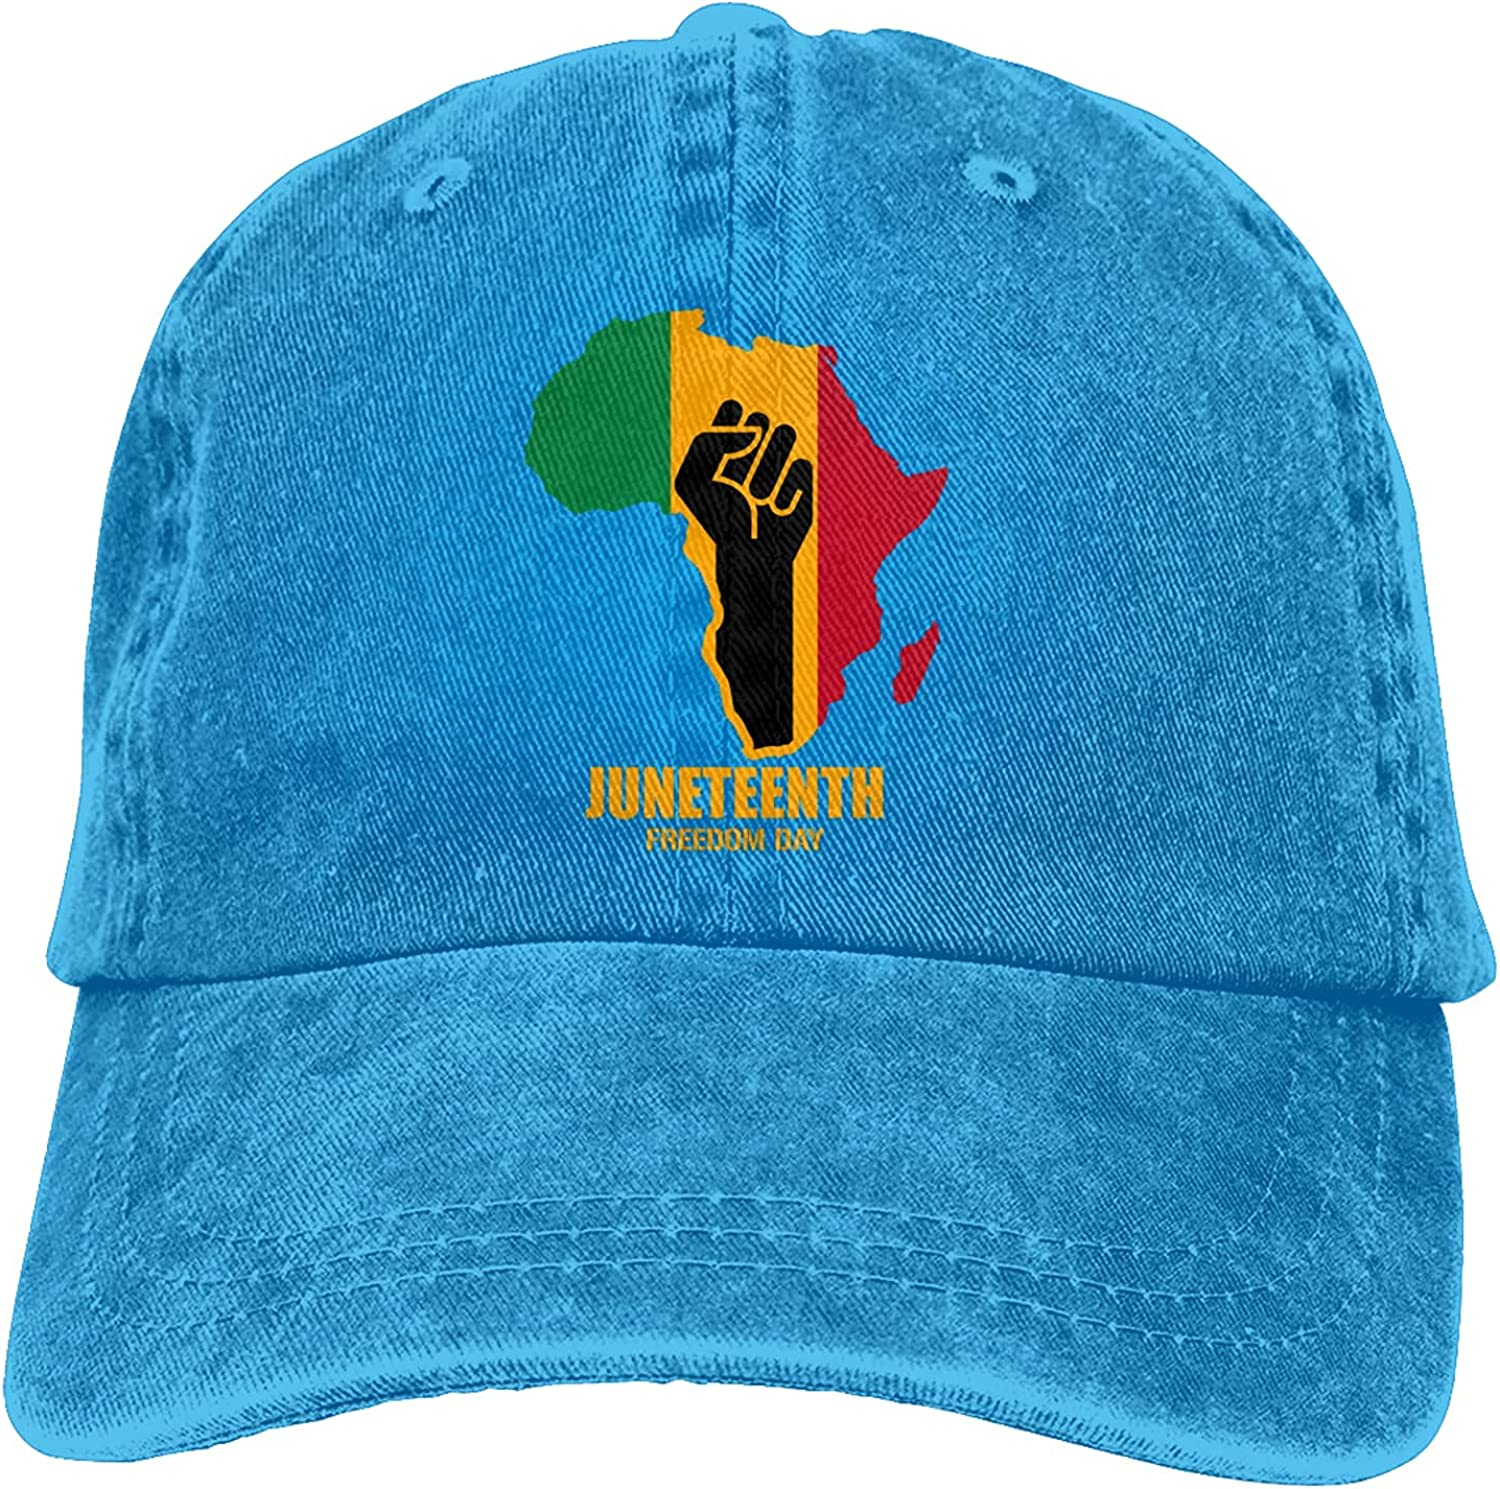 BGWORZD African American - Juneteenth Day Baseball Caps, Cotton Washed Adult Cowboy Hats, Adjustable Dad Hats Black